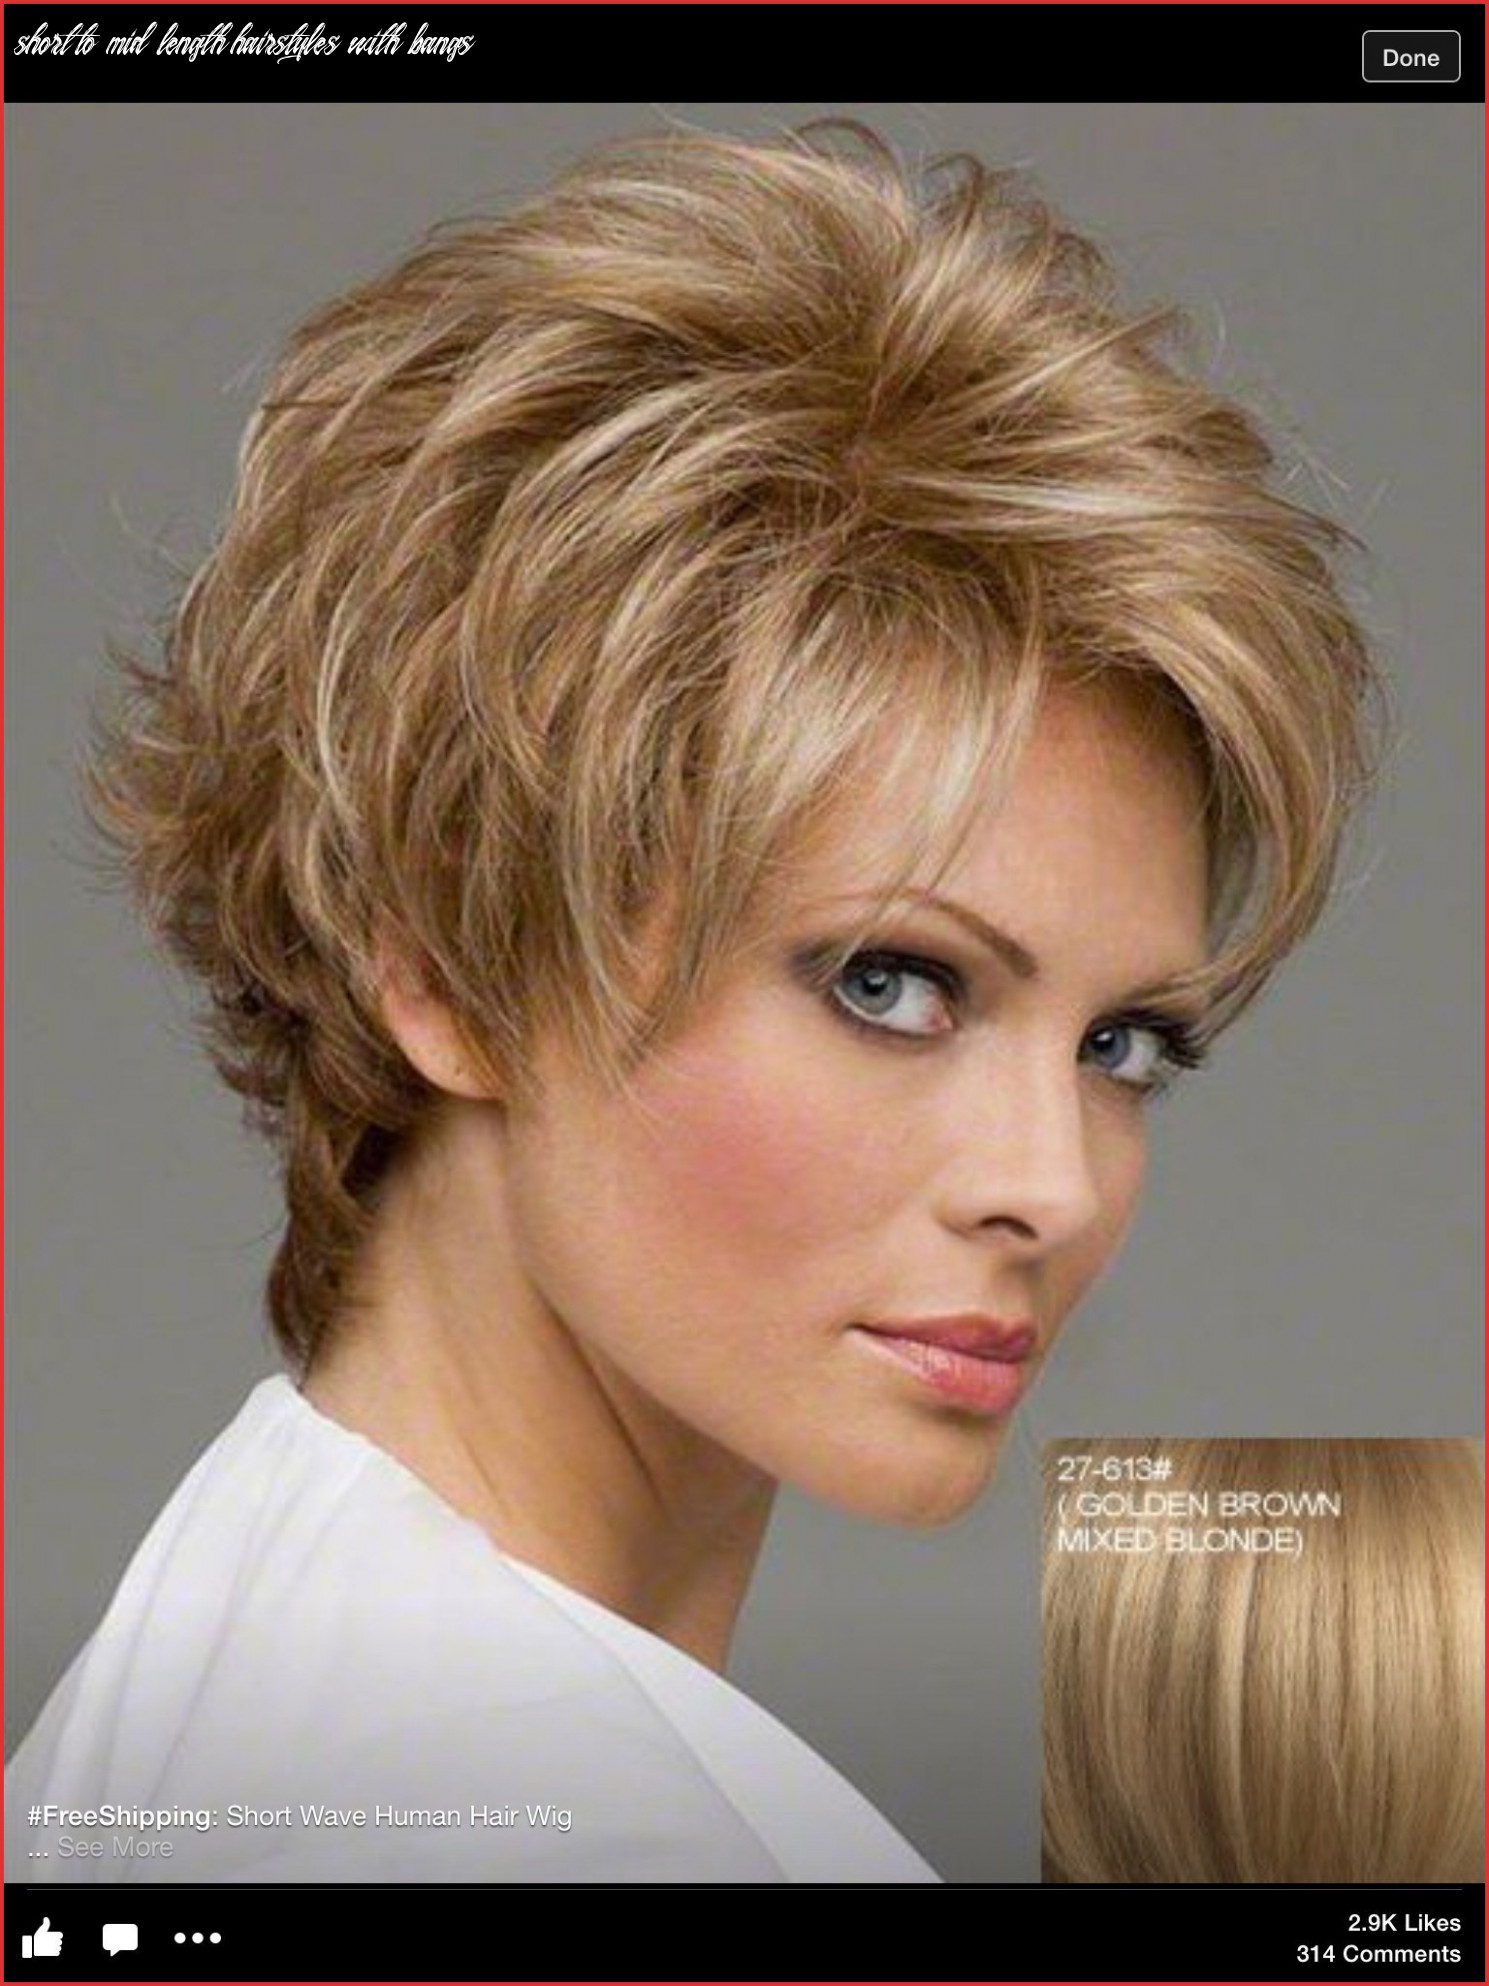 Short to mid length hairstyles with bangs best of girl short hair